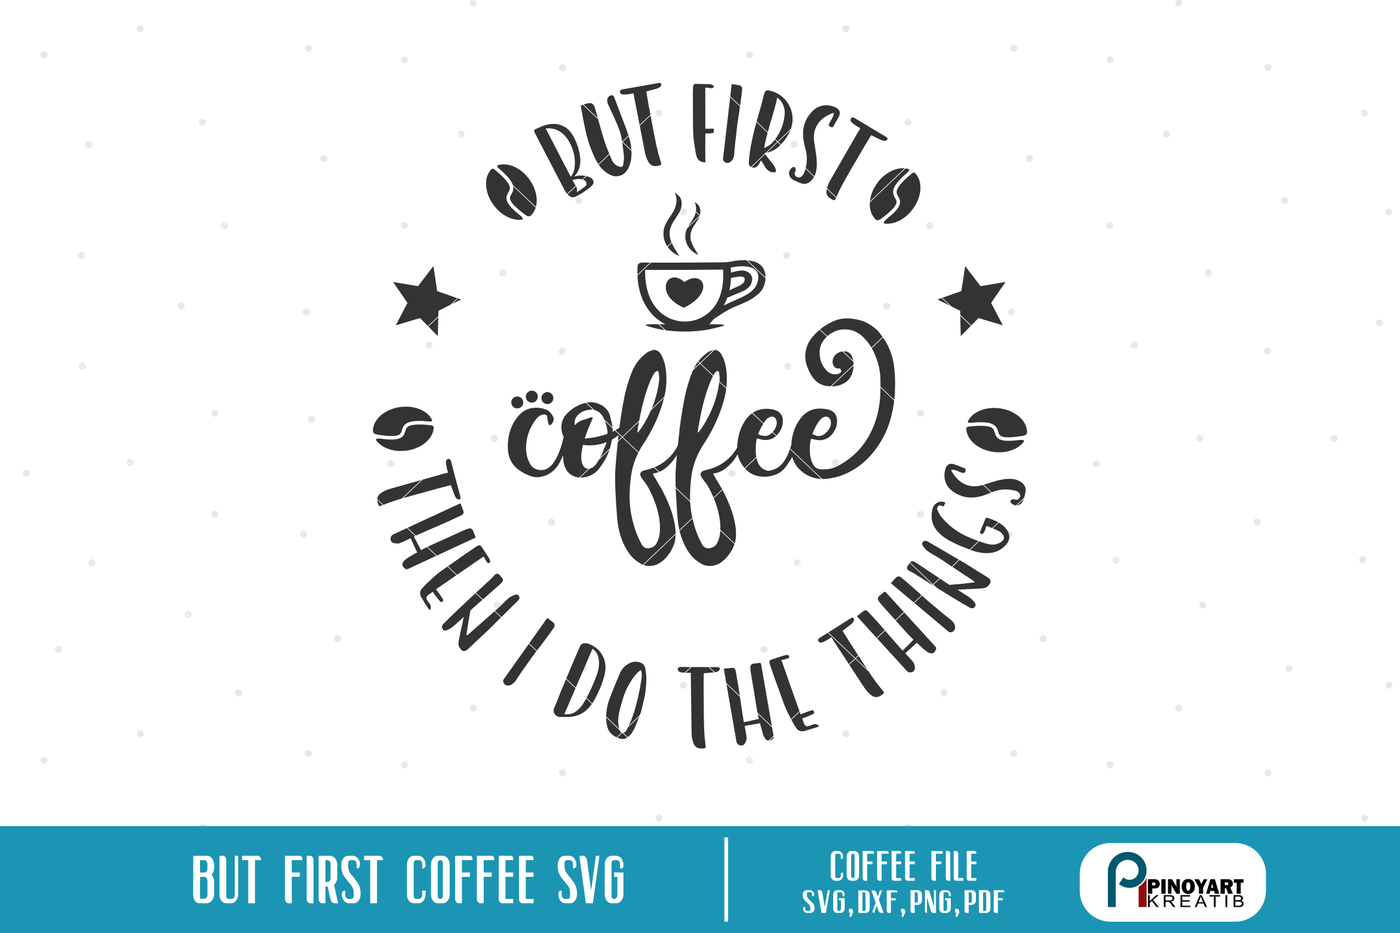 But First Coffee Svg Coffee Svg Cafe Svg Svg Files For Cricut